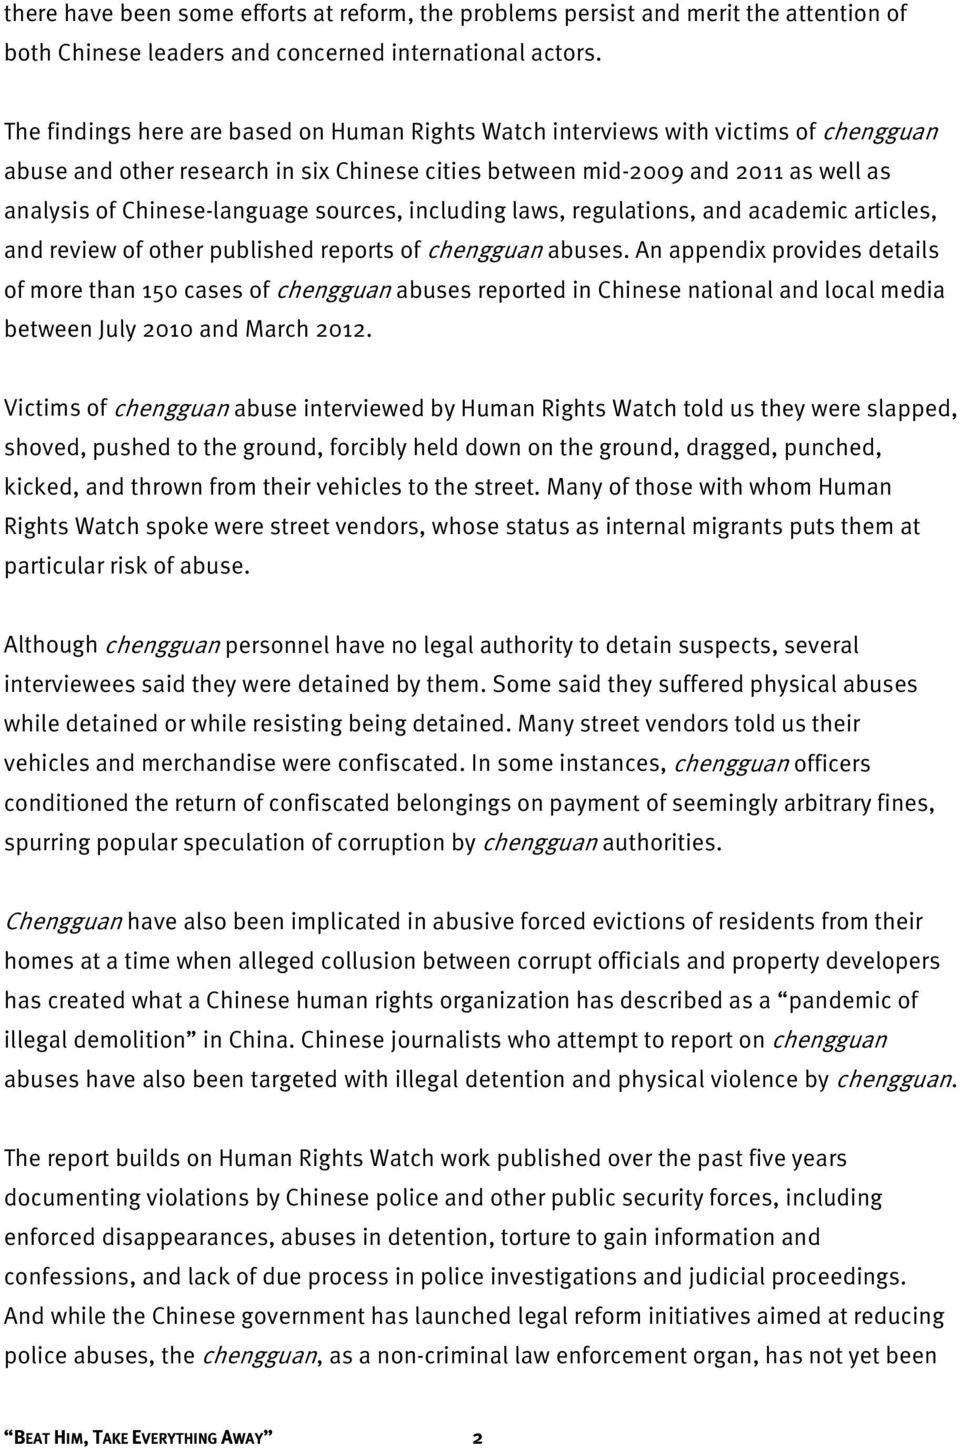 sources, including laws, regulations, and academic articles, and review of other published reports of chengguan abuses.